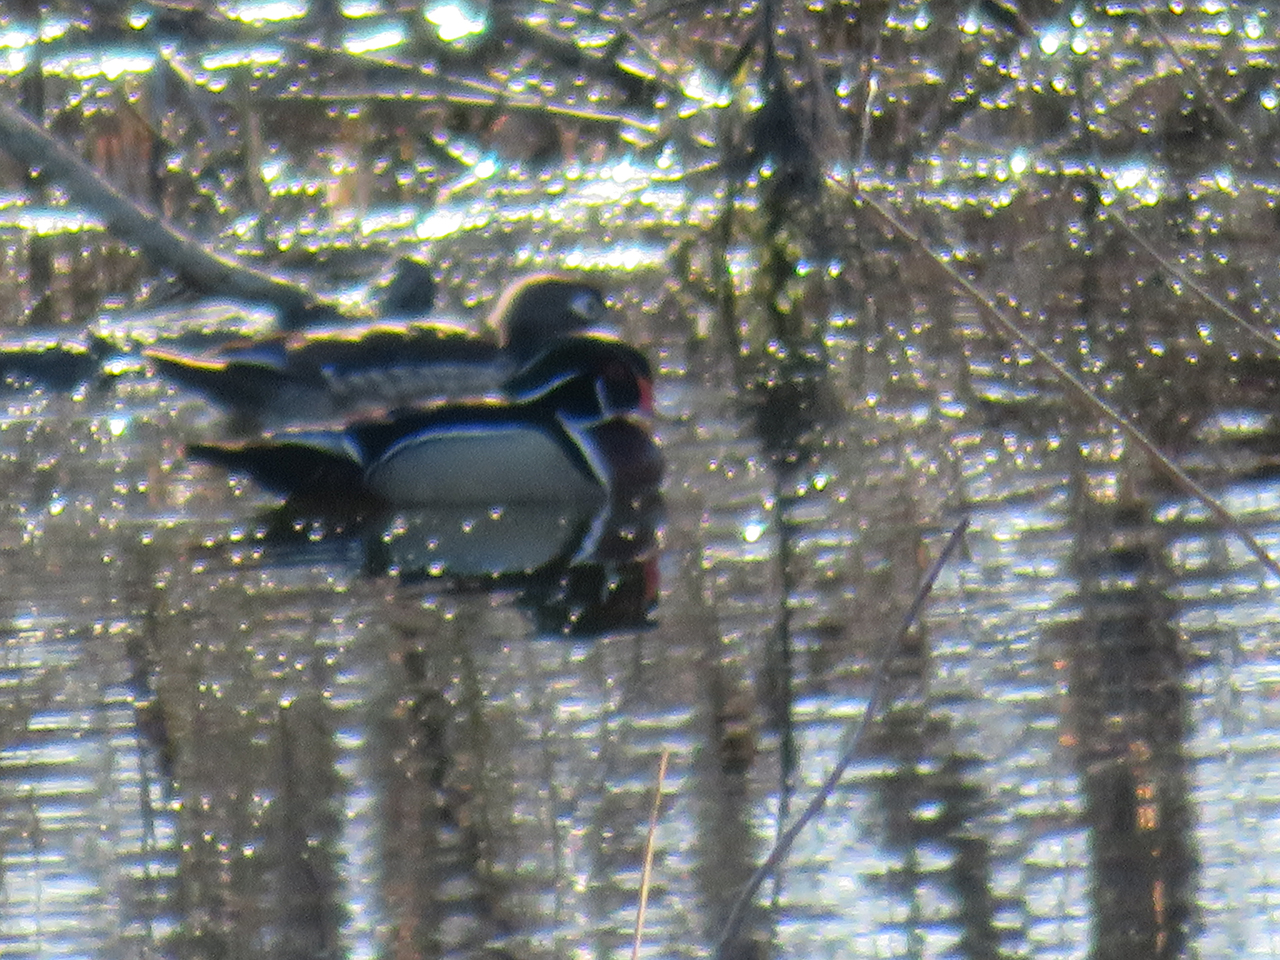 A pair of ducks swimming together in Seneca County (photo)